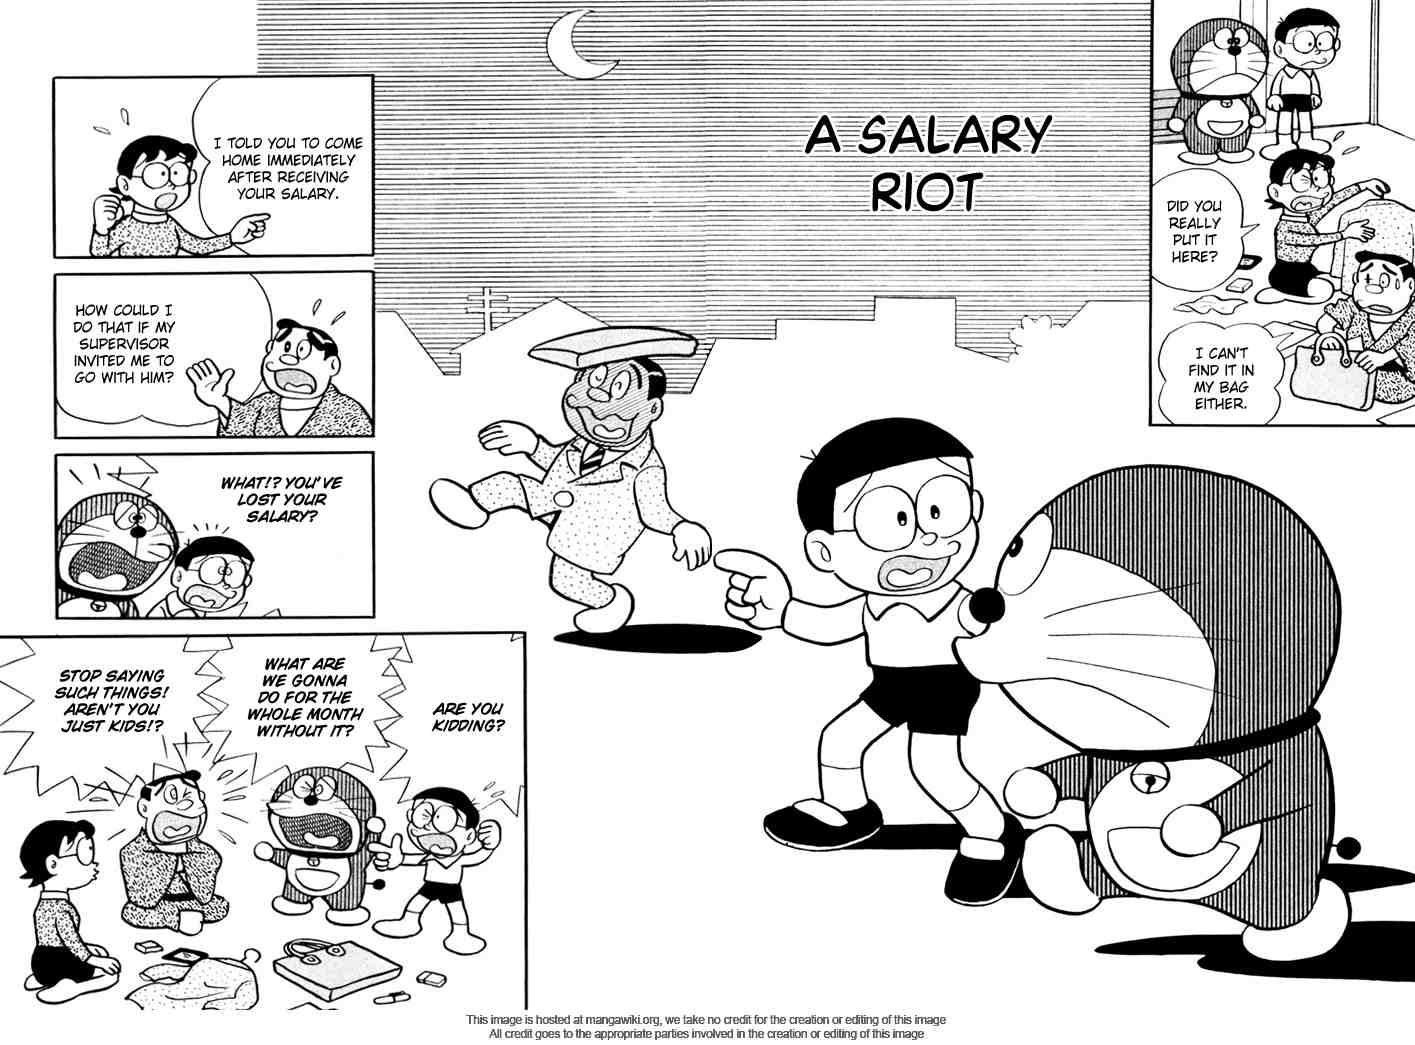 Chapter 17: A Salary Riot/Gallery